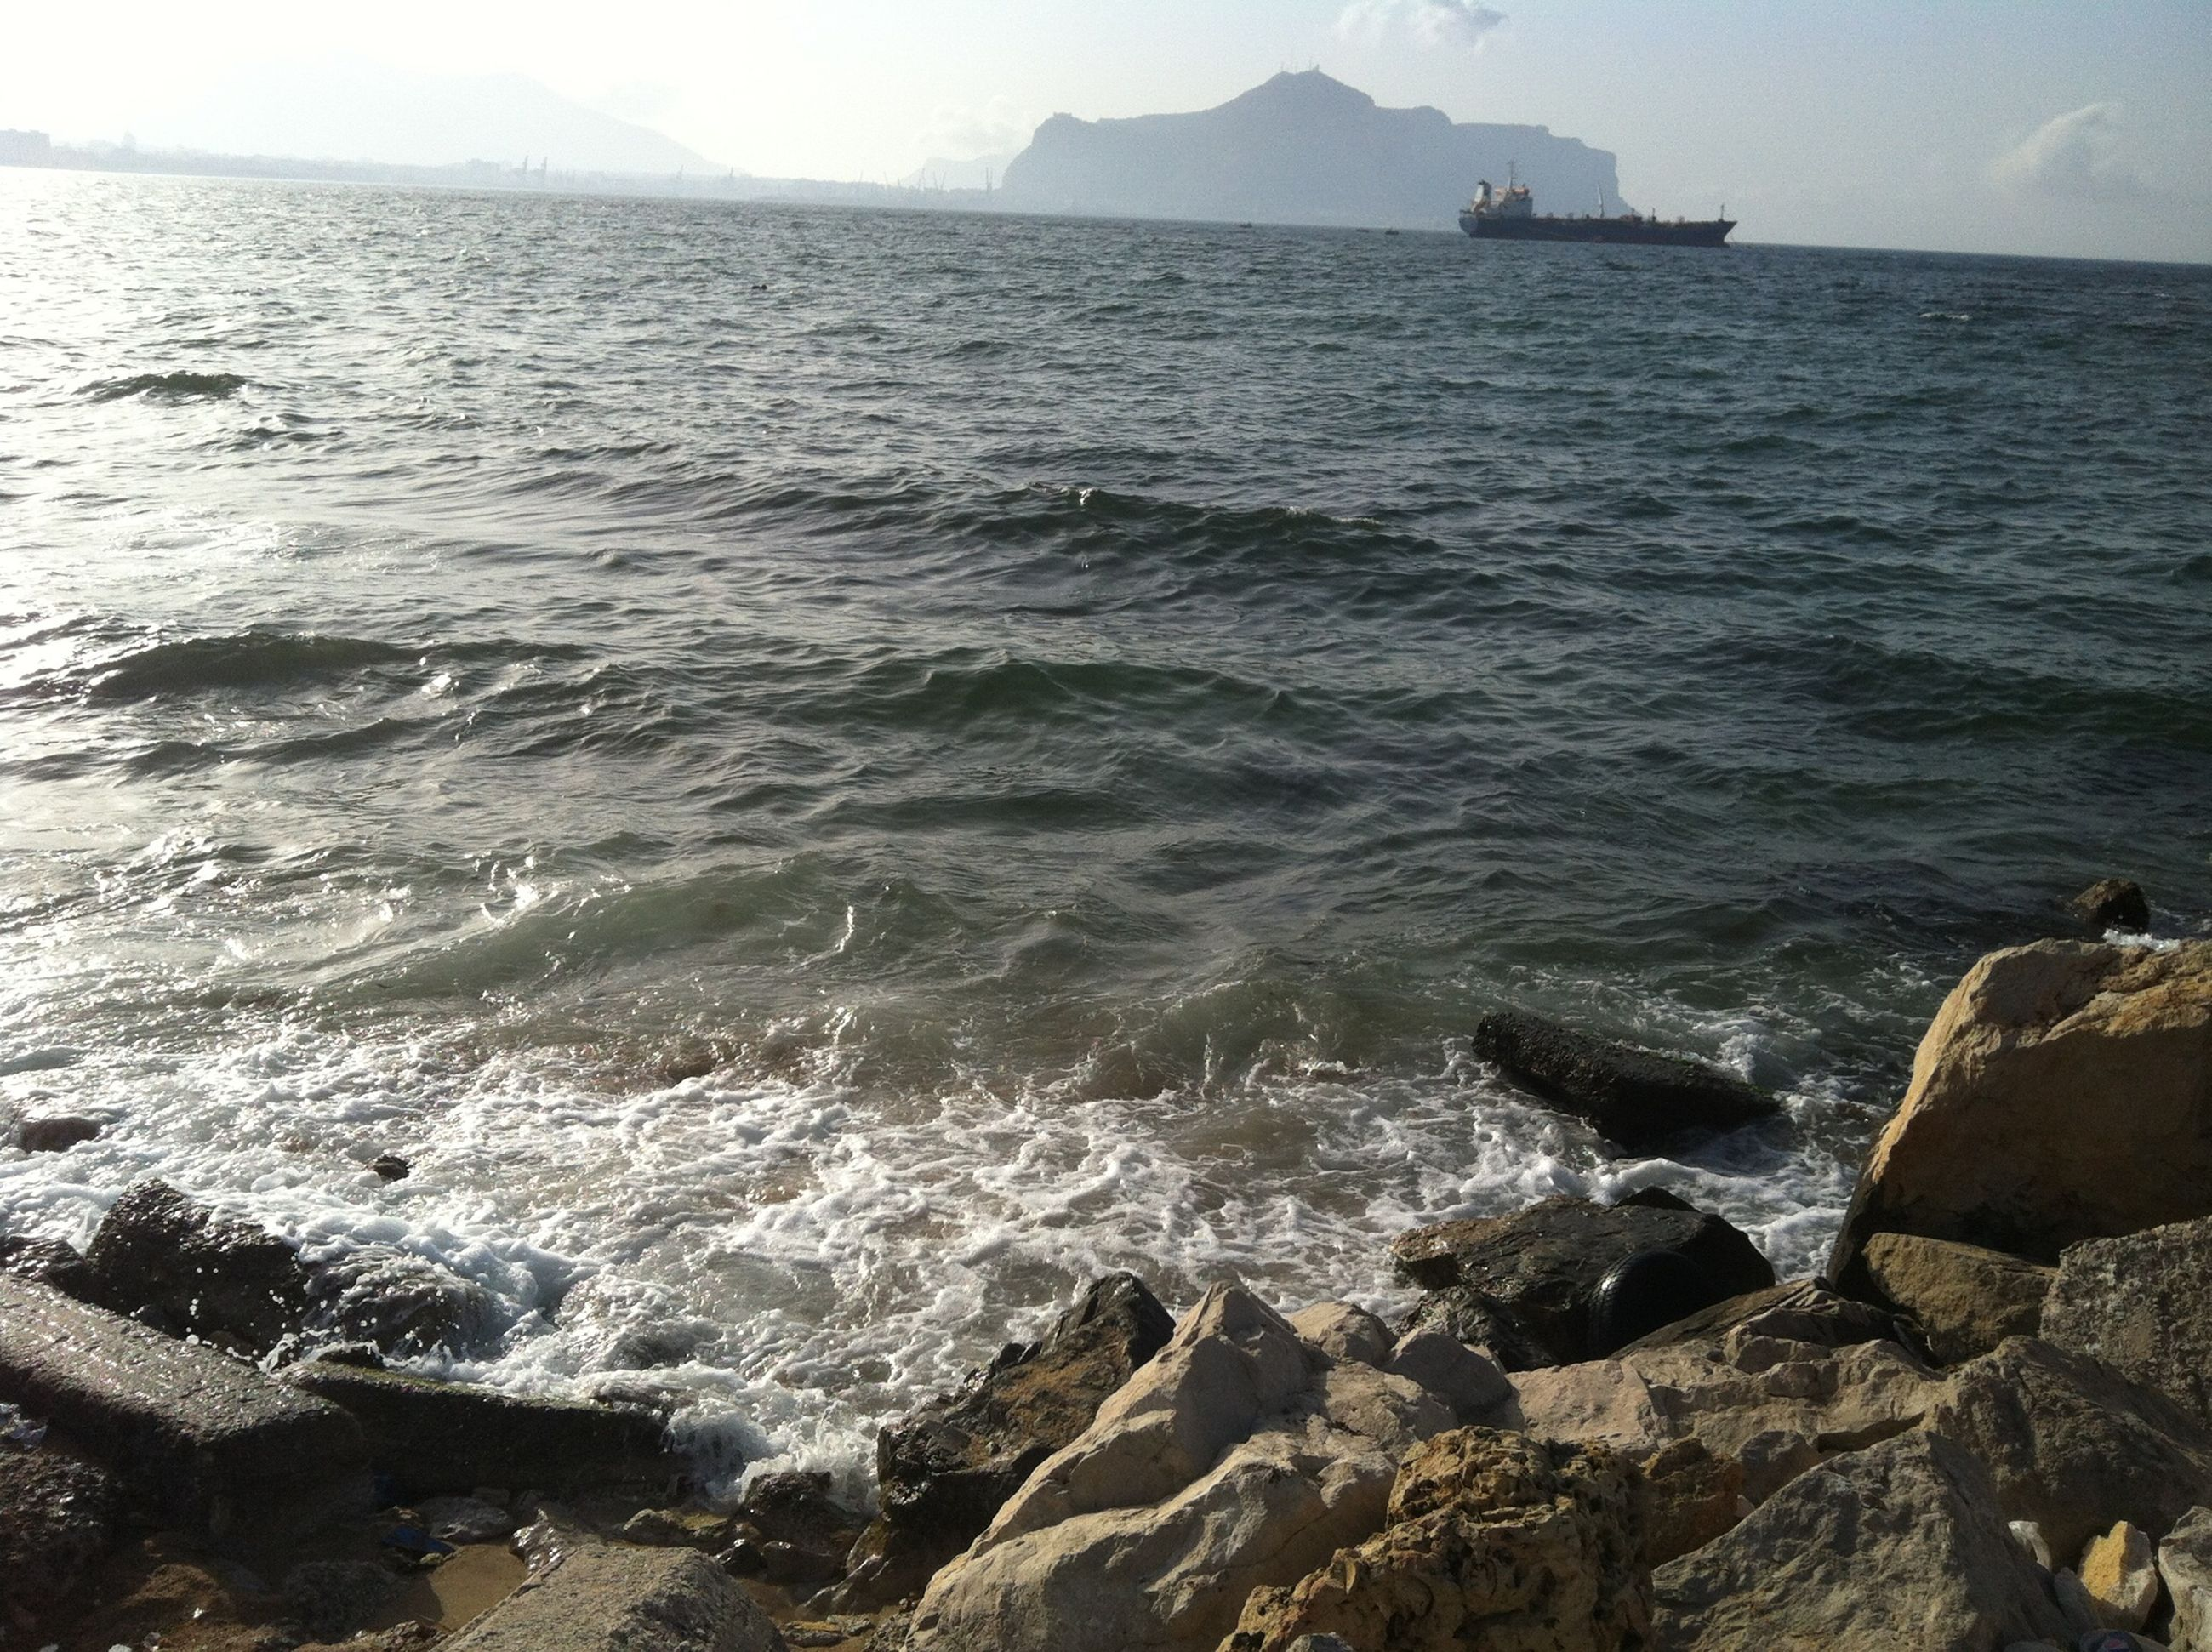 sea, water, nature, beauty in nature, beach, scenics, outdoors, tranquil scene, tranquility, day, sky, no people, wave